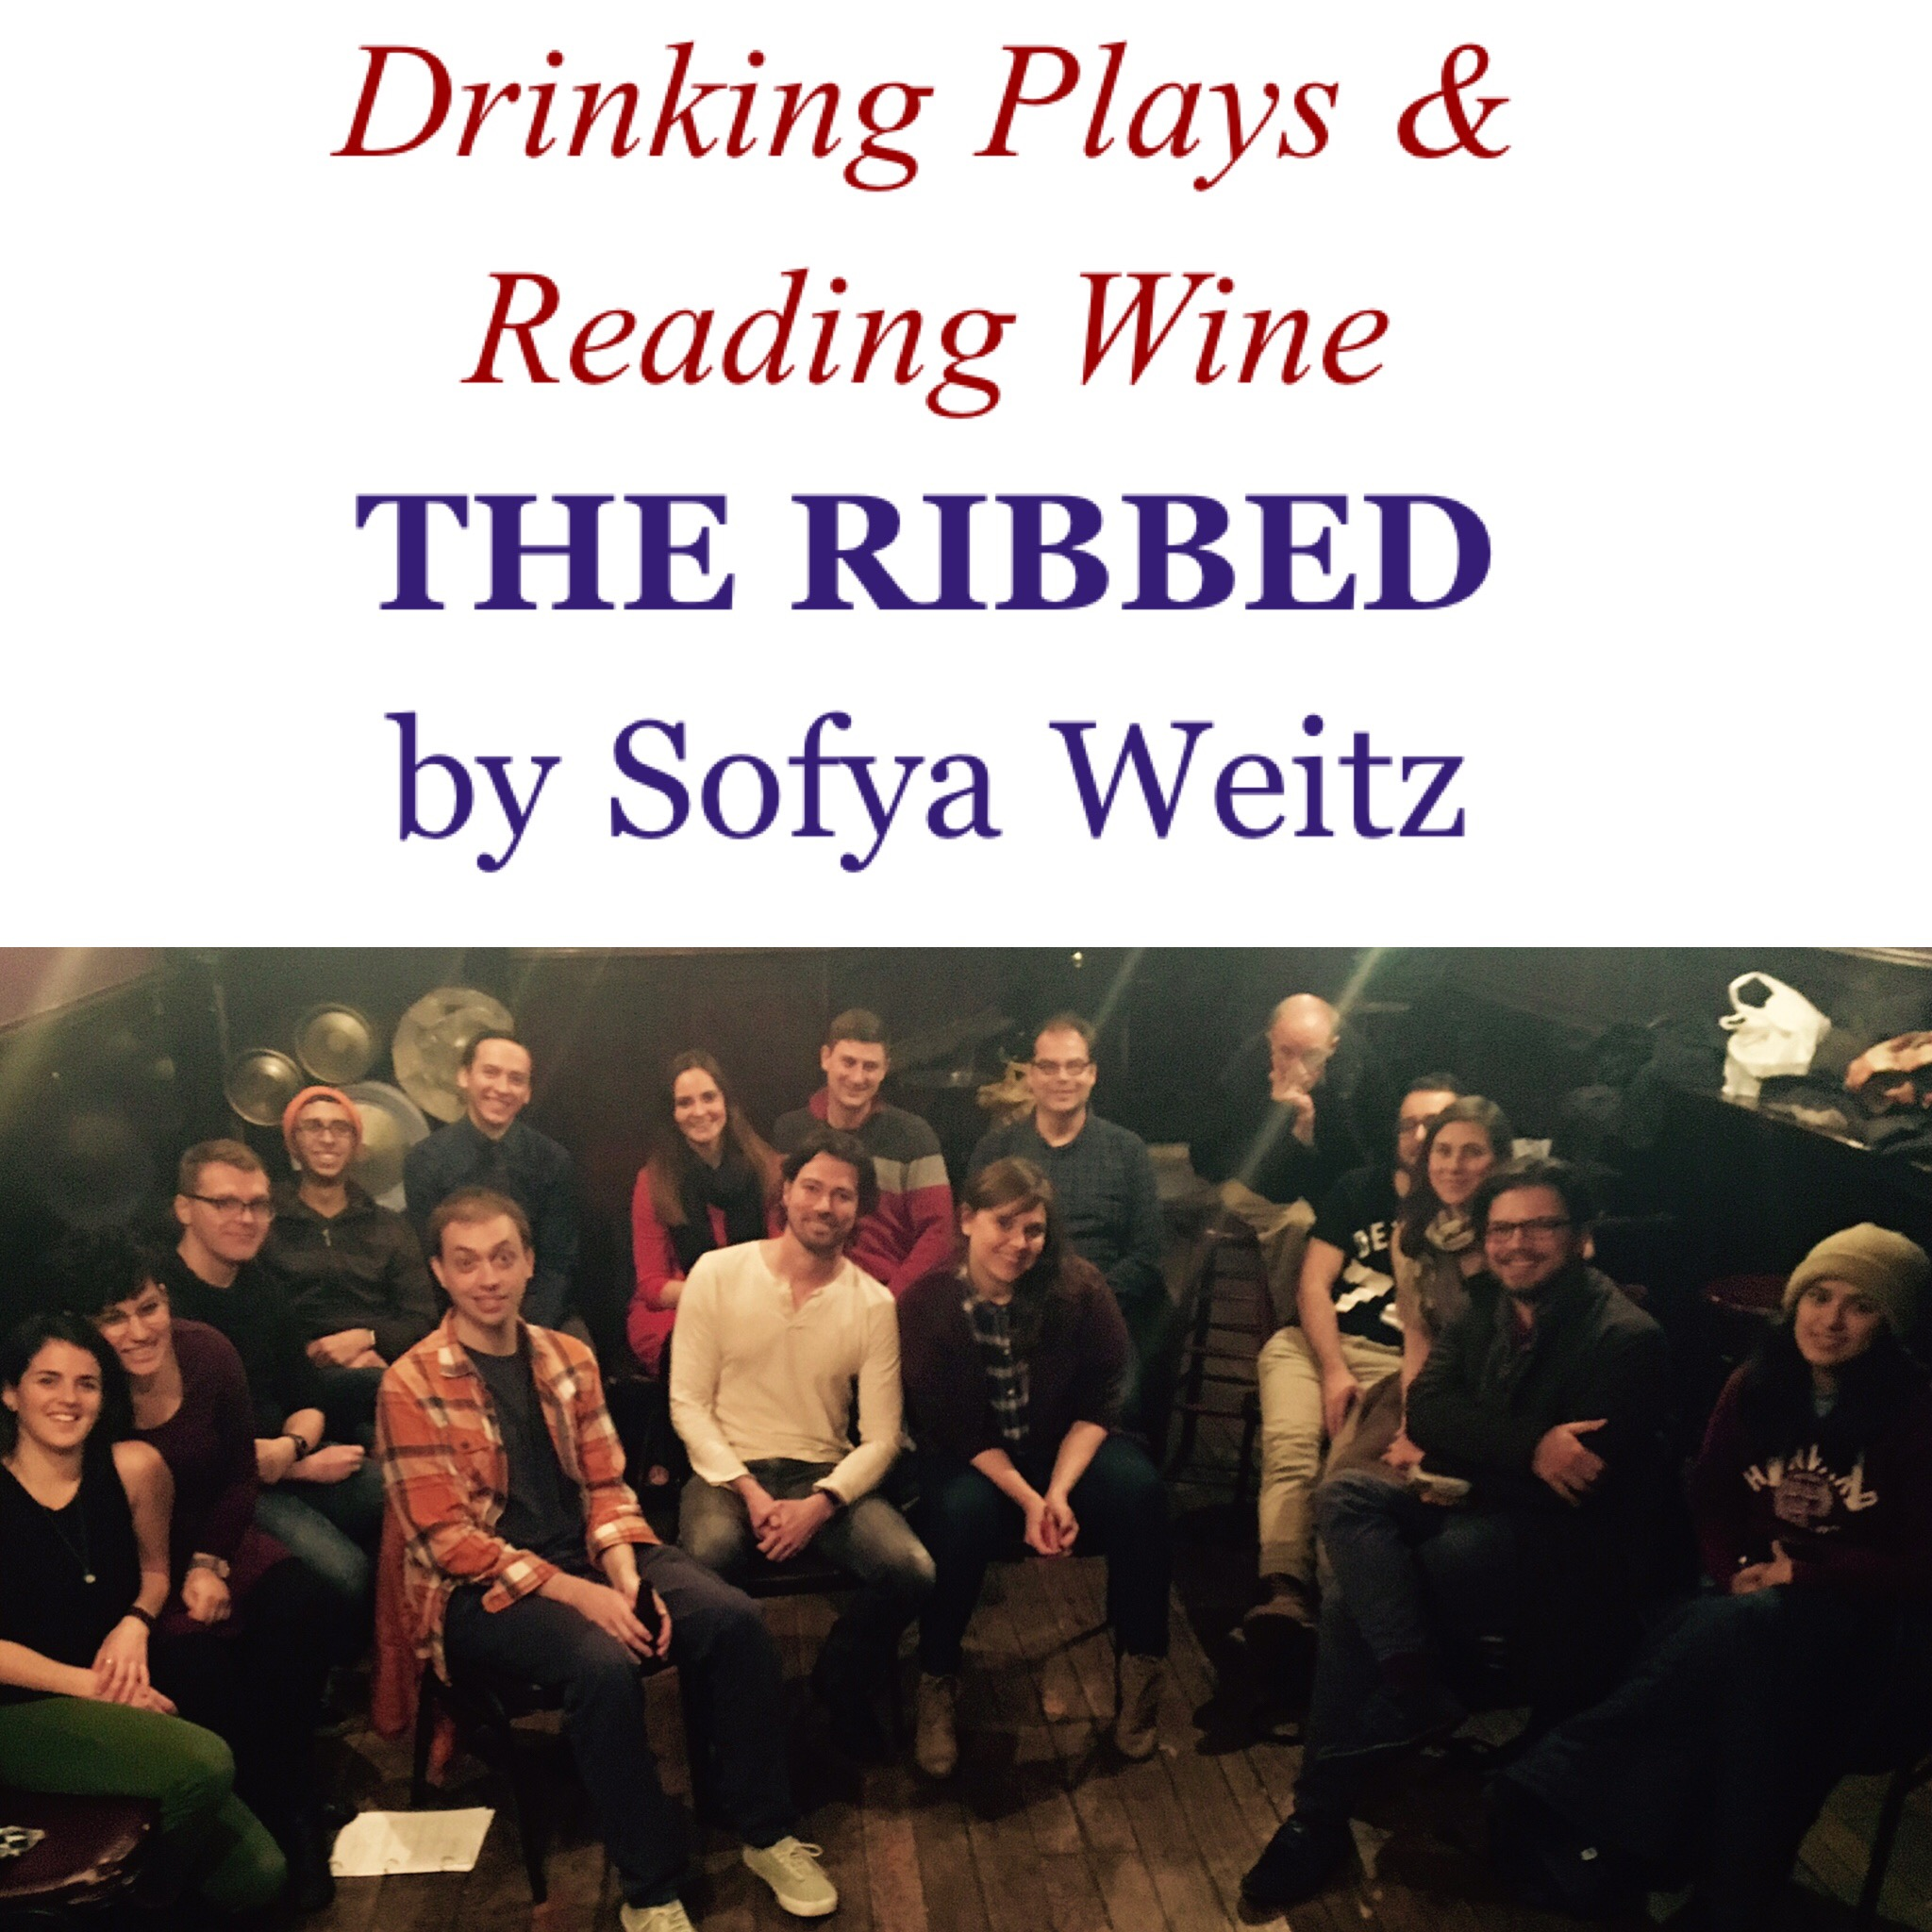 31. *THE RIBBED by Sofya Weitz